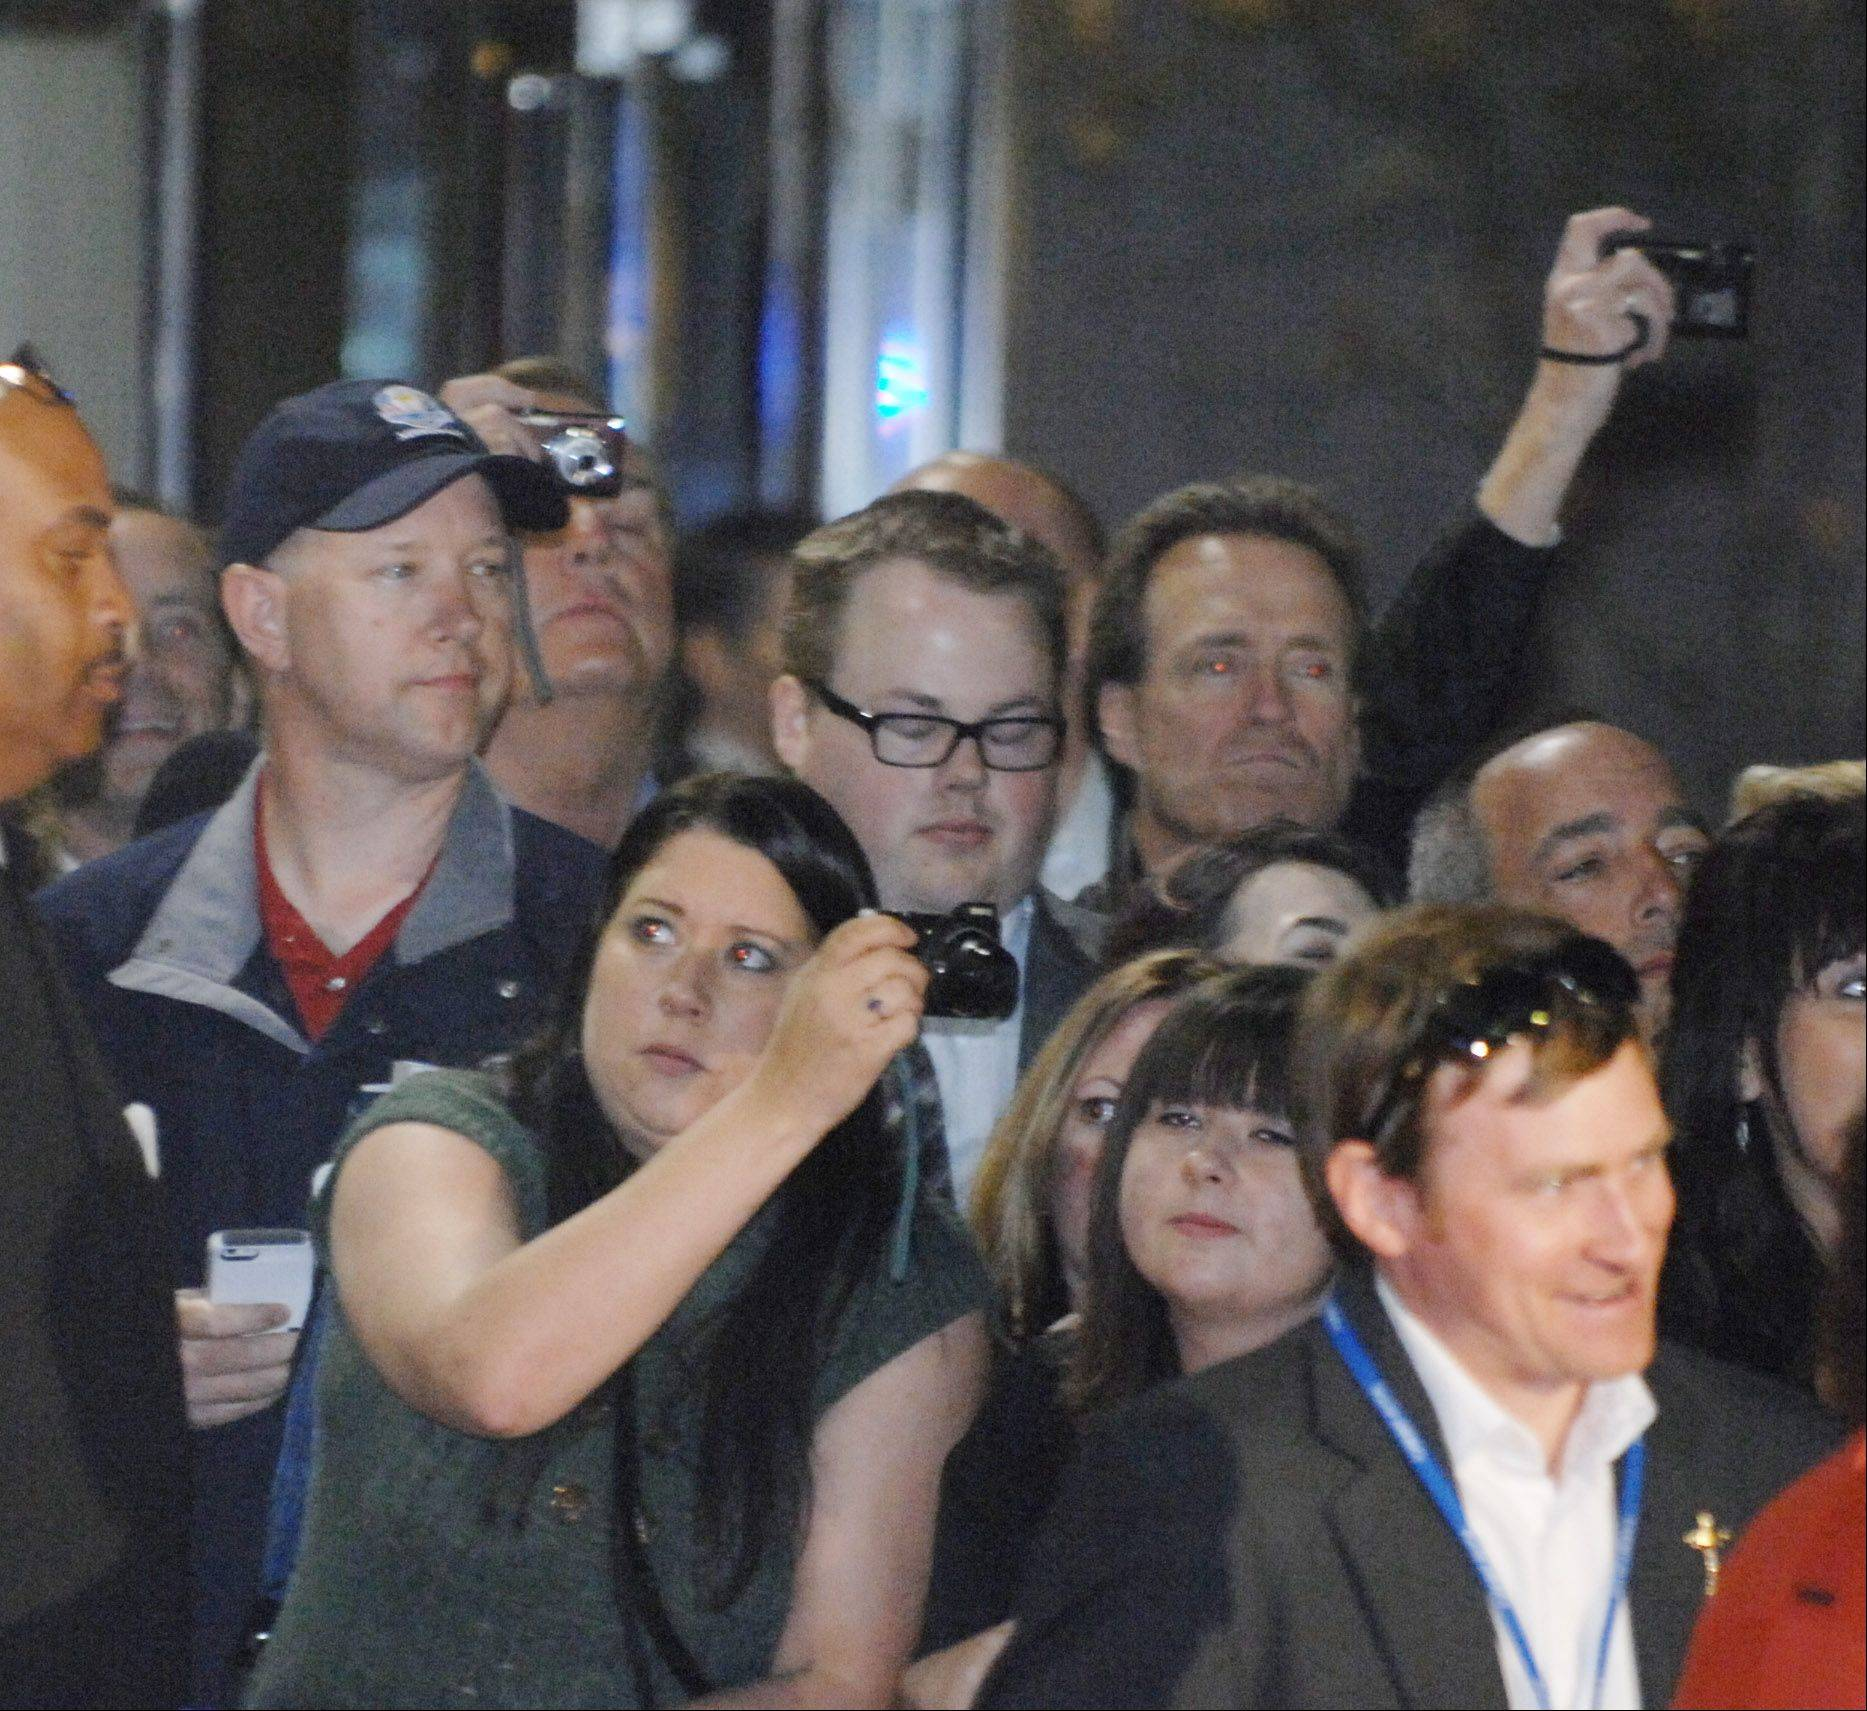 Fans look for their favorite stars at the the 39th Ryder Cup Gala at the Akoo Theatre in Rosemont Wednesday.